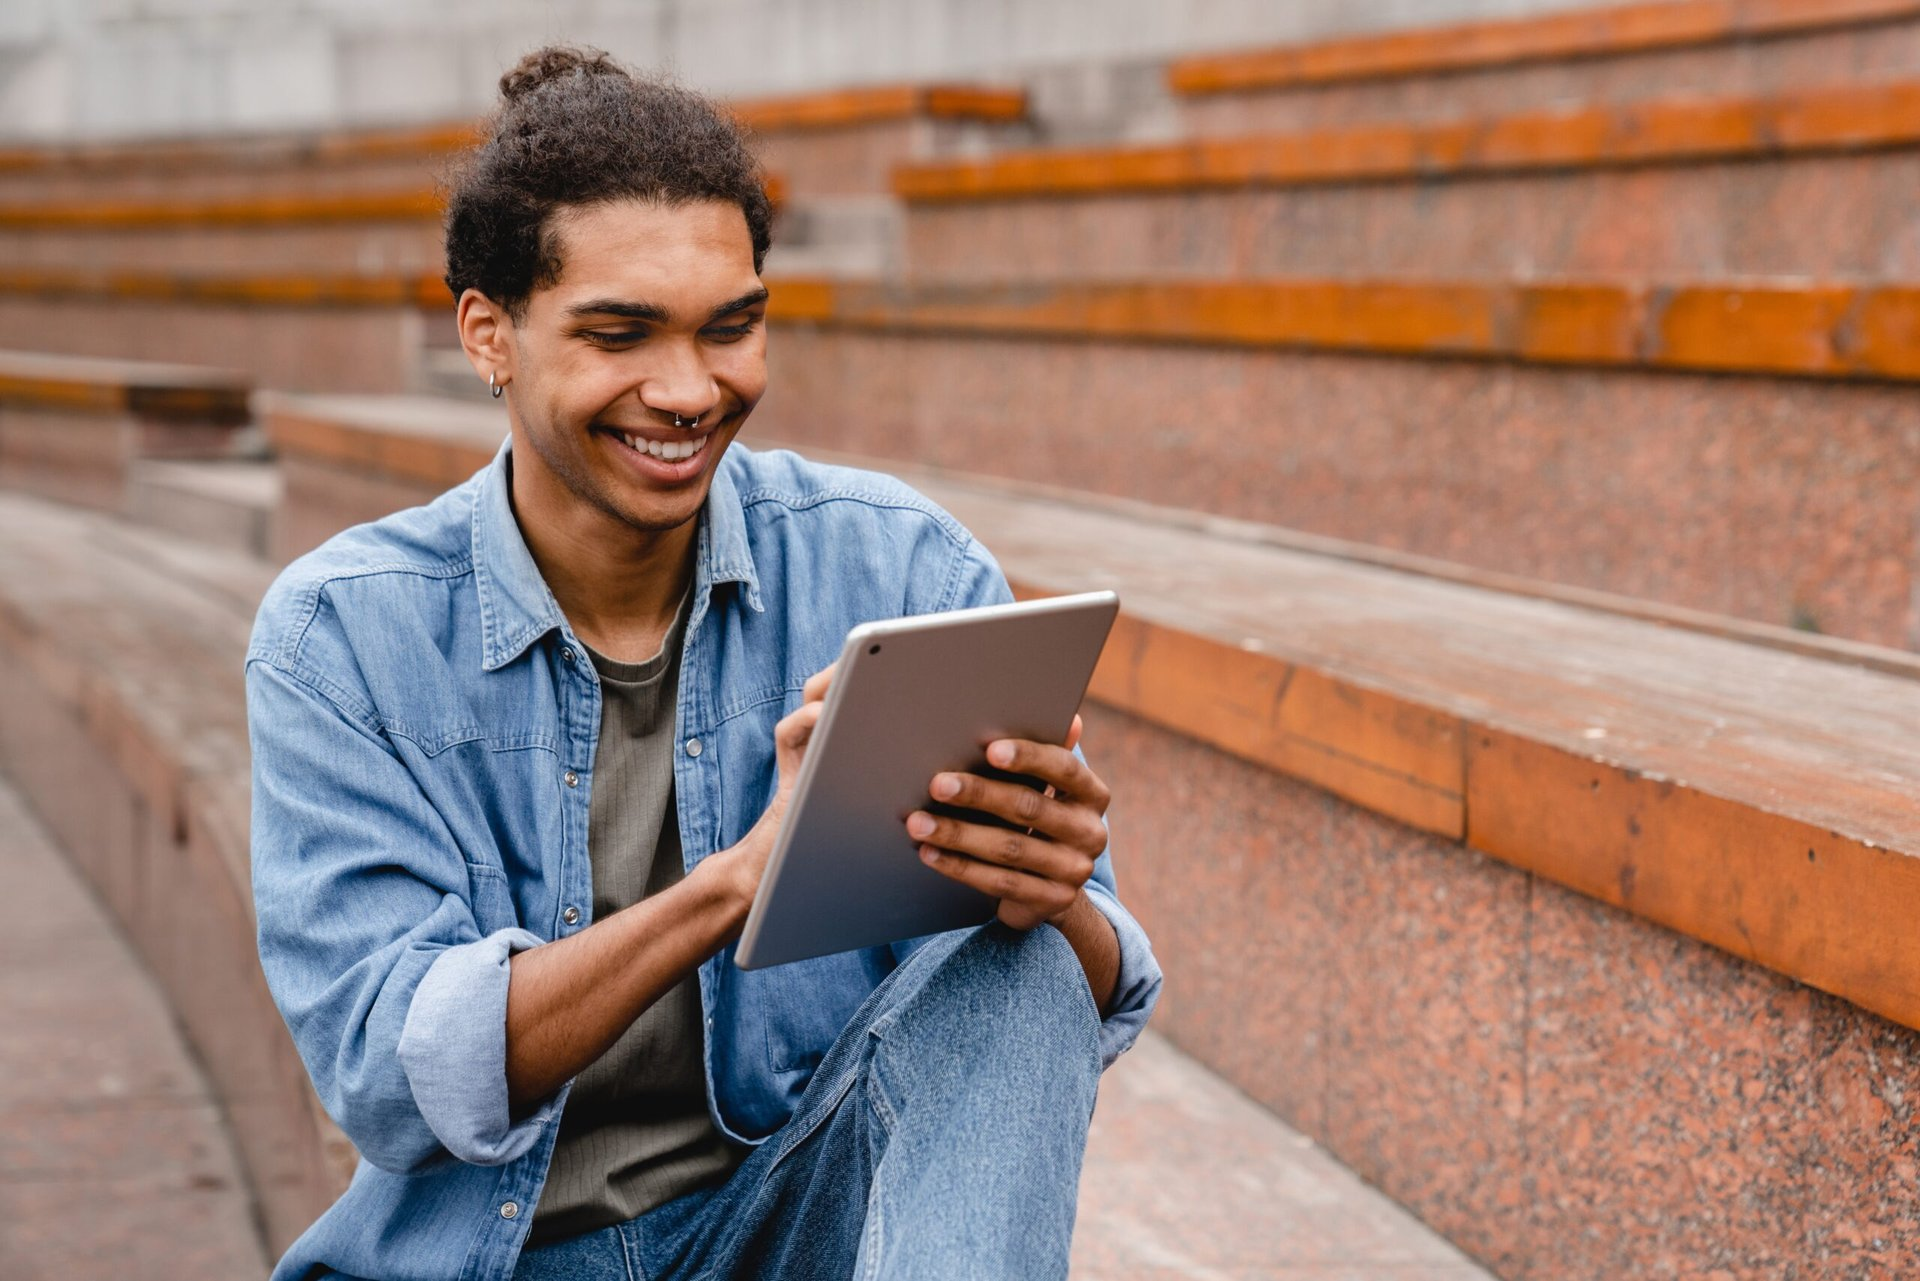 Man reading on a tablet